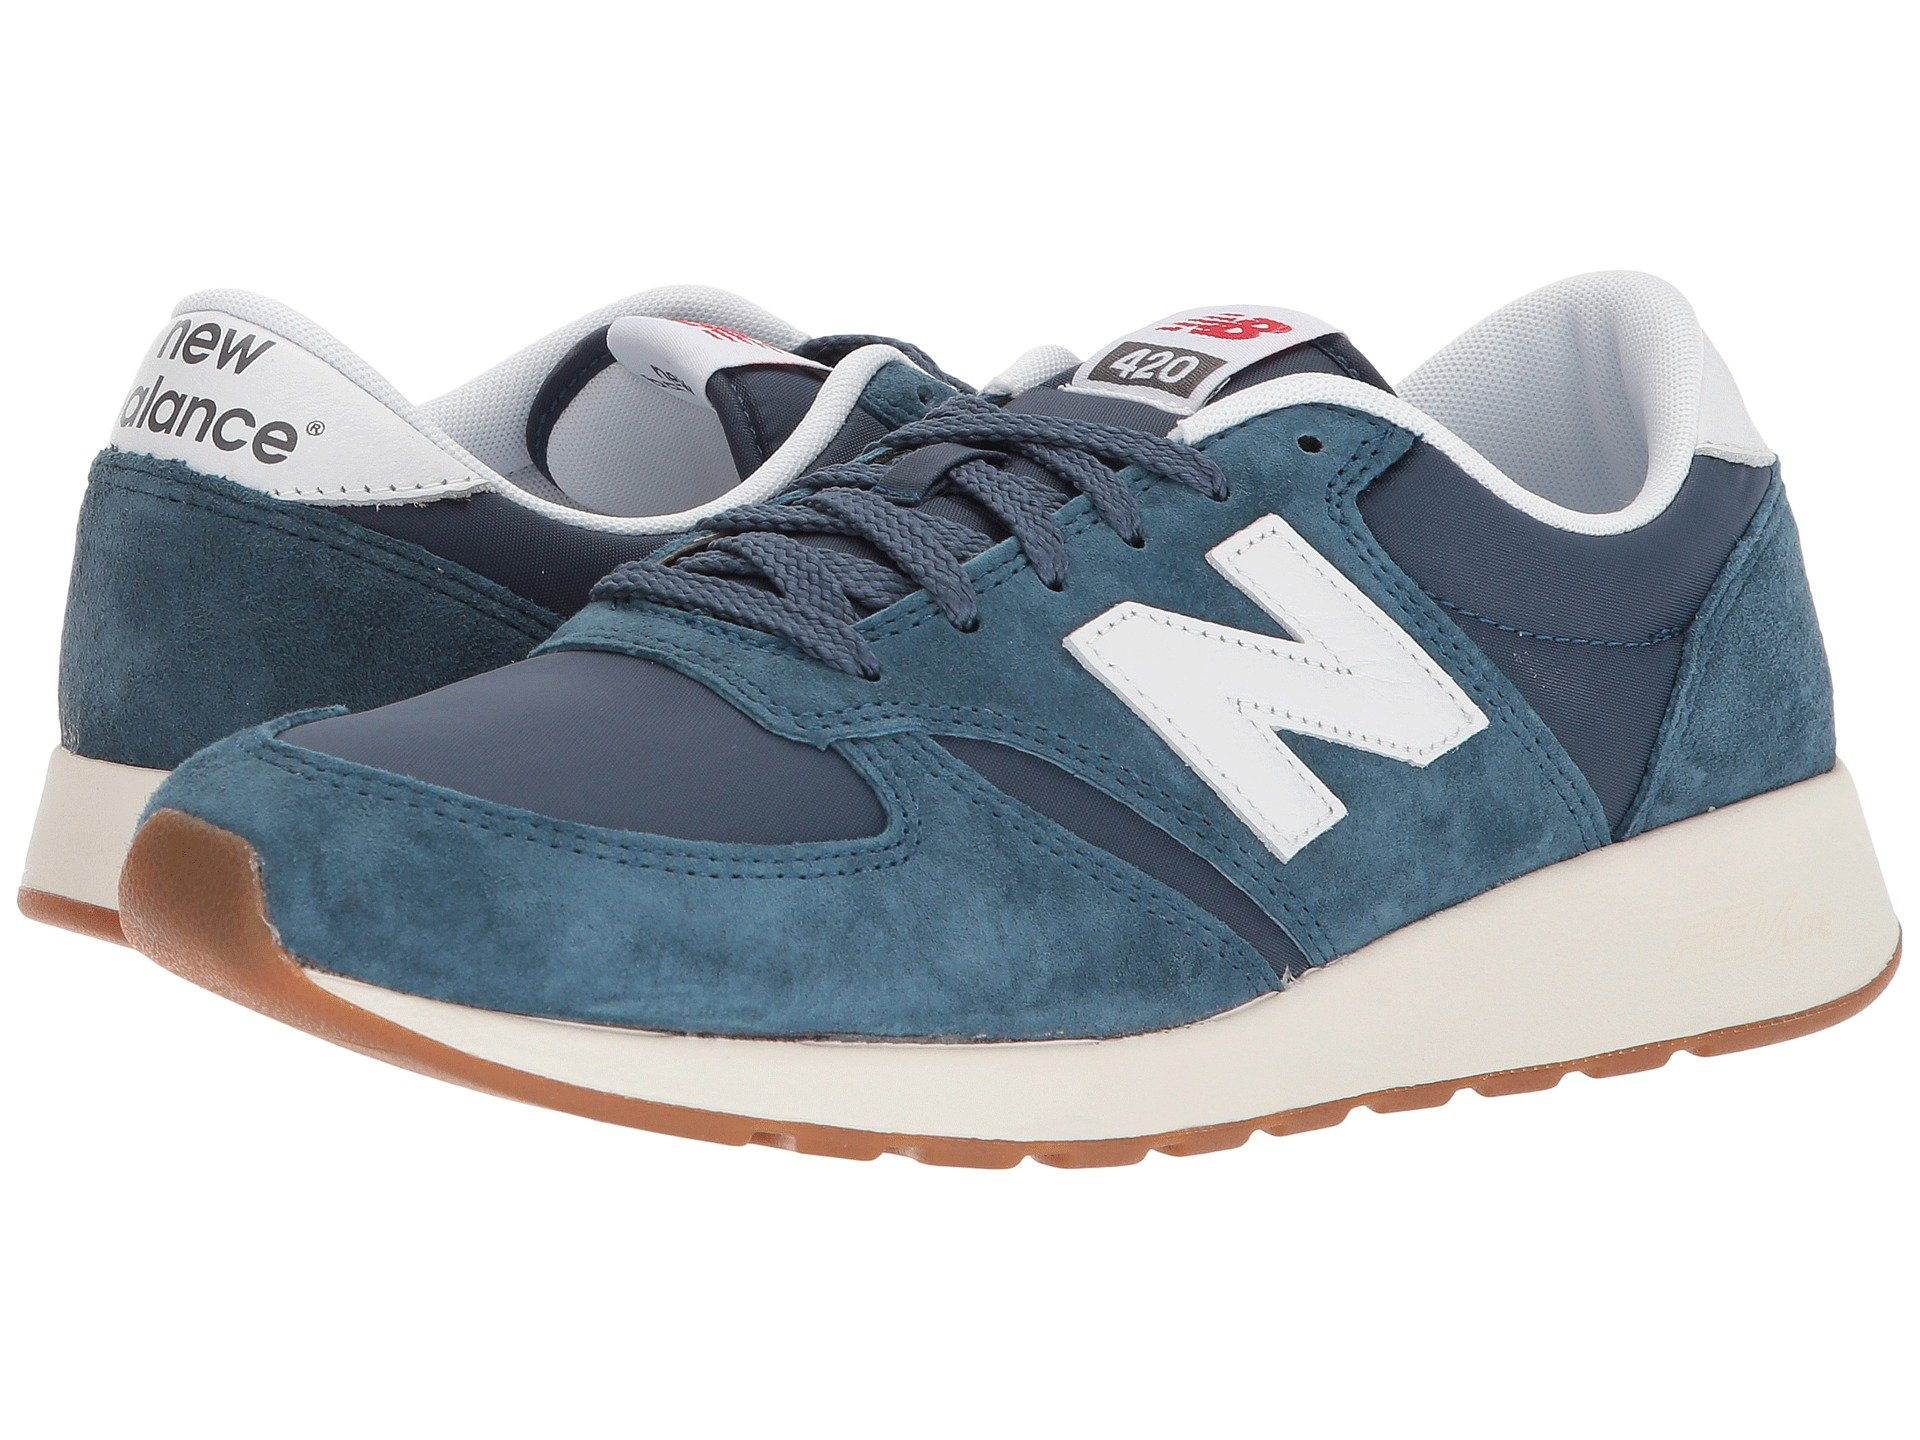 new balance kl 782 rose